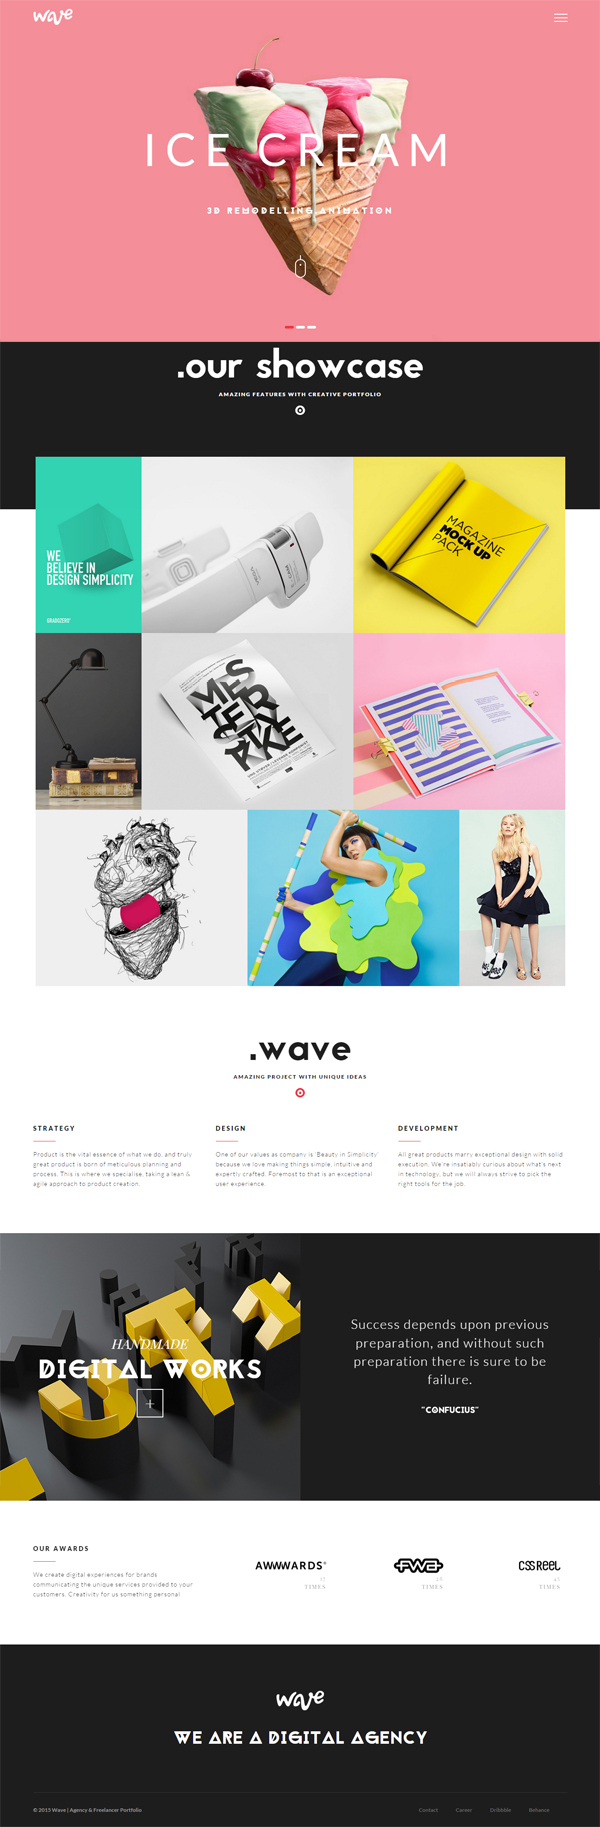 Wave - Agency & Freelancer Portfolio WP Theme